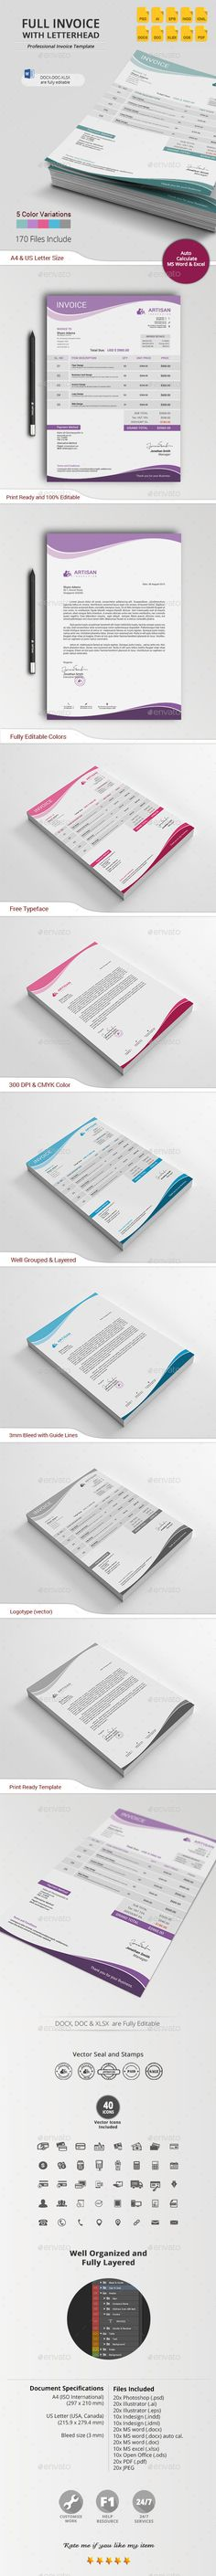 86 Best Quotation I Invoice I Proposal images Proposal templates